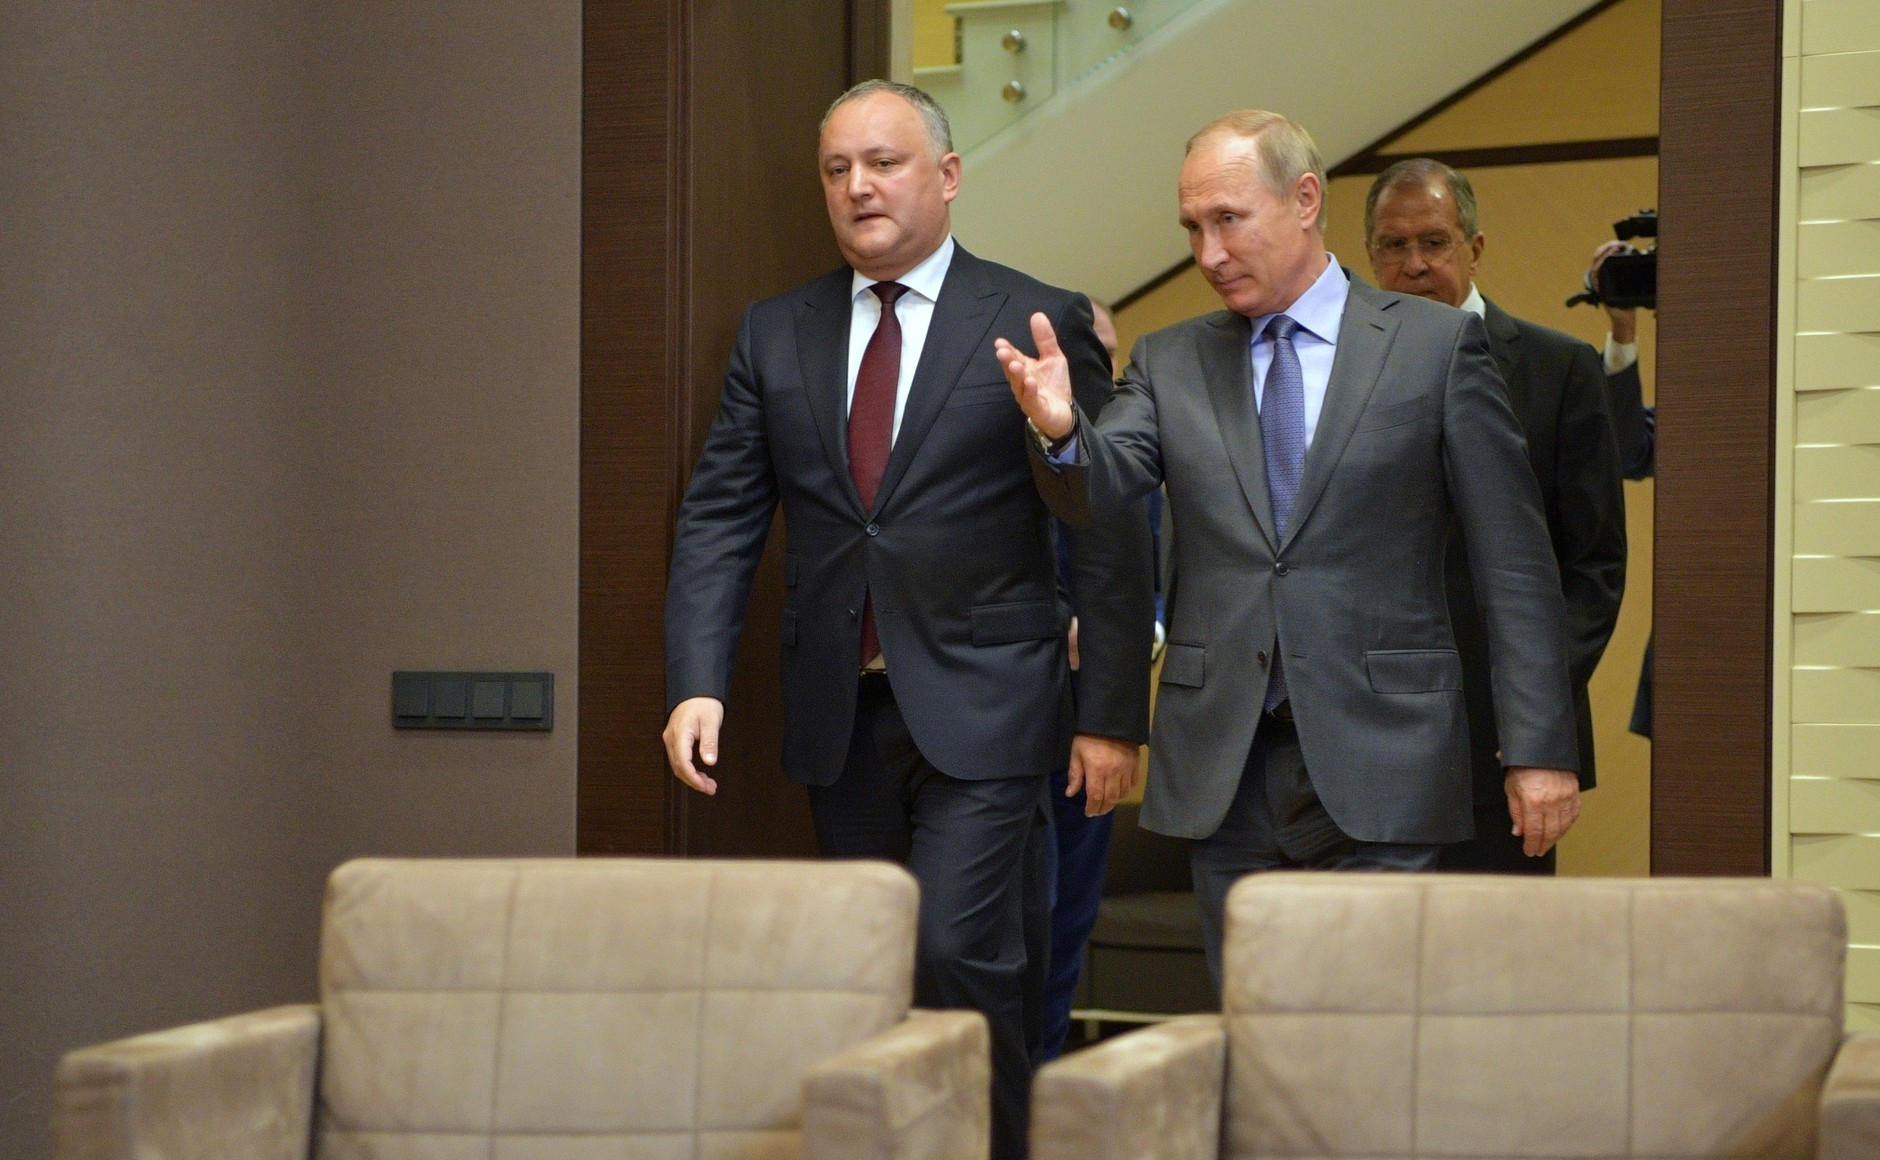 Putin shows Dodon to his seat (Kremlin.ru)